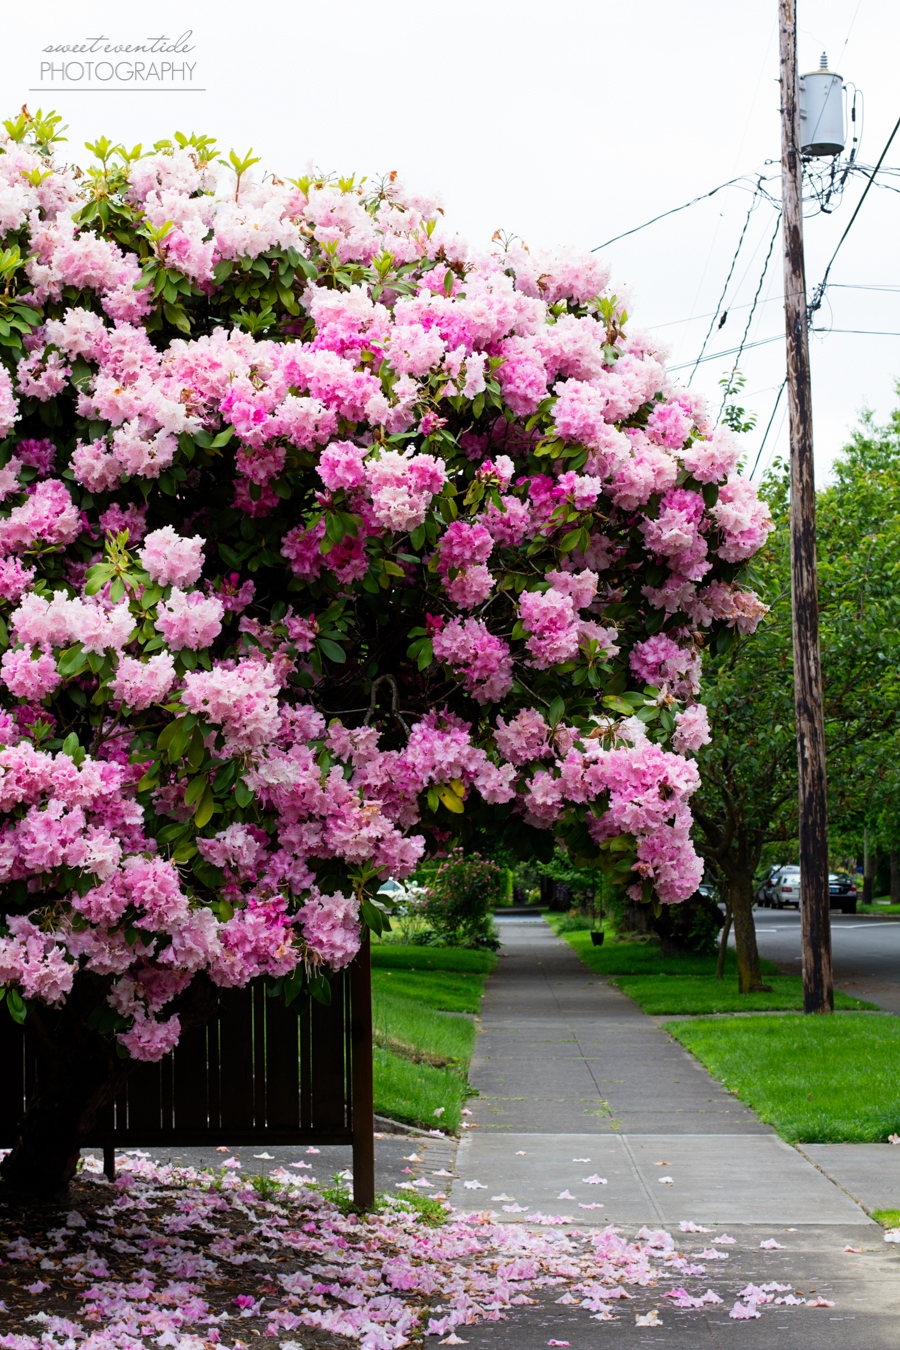 pink rhododendron by a fence and sidewalk